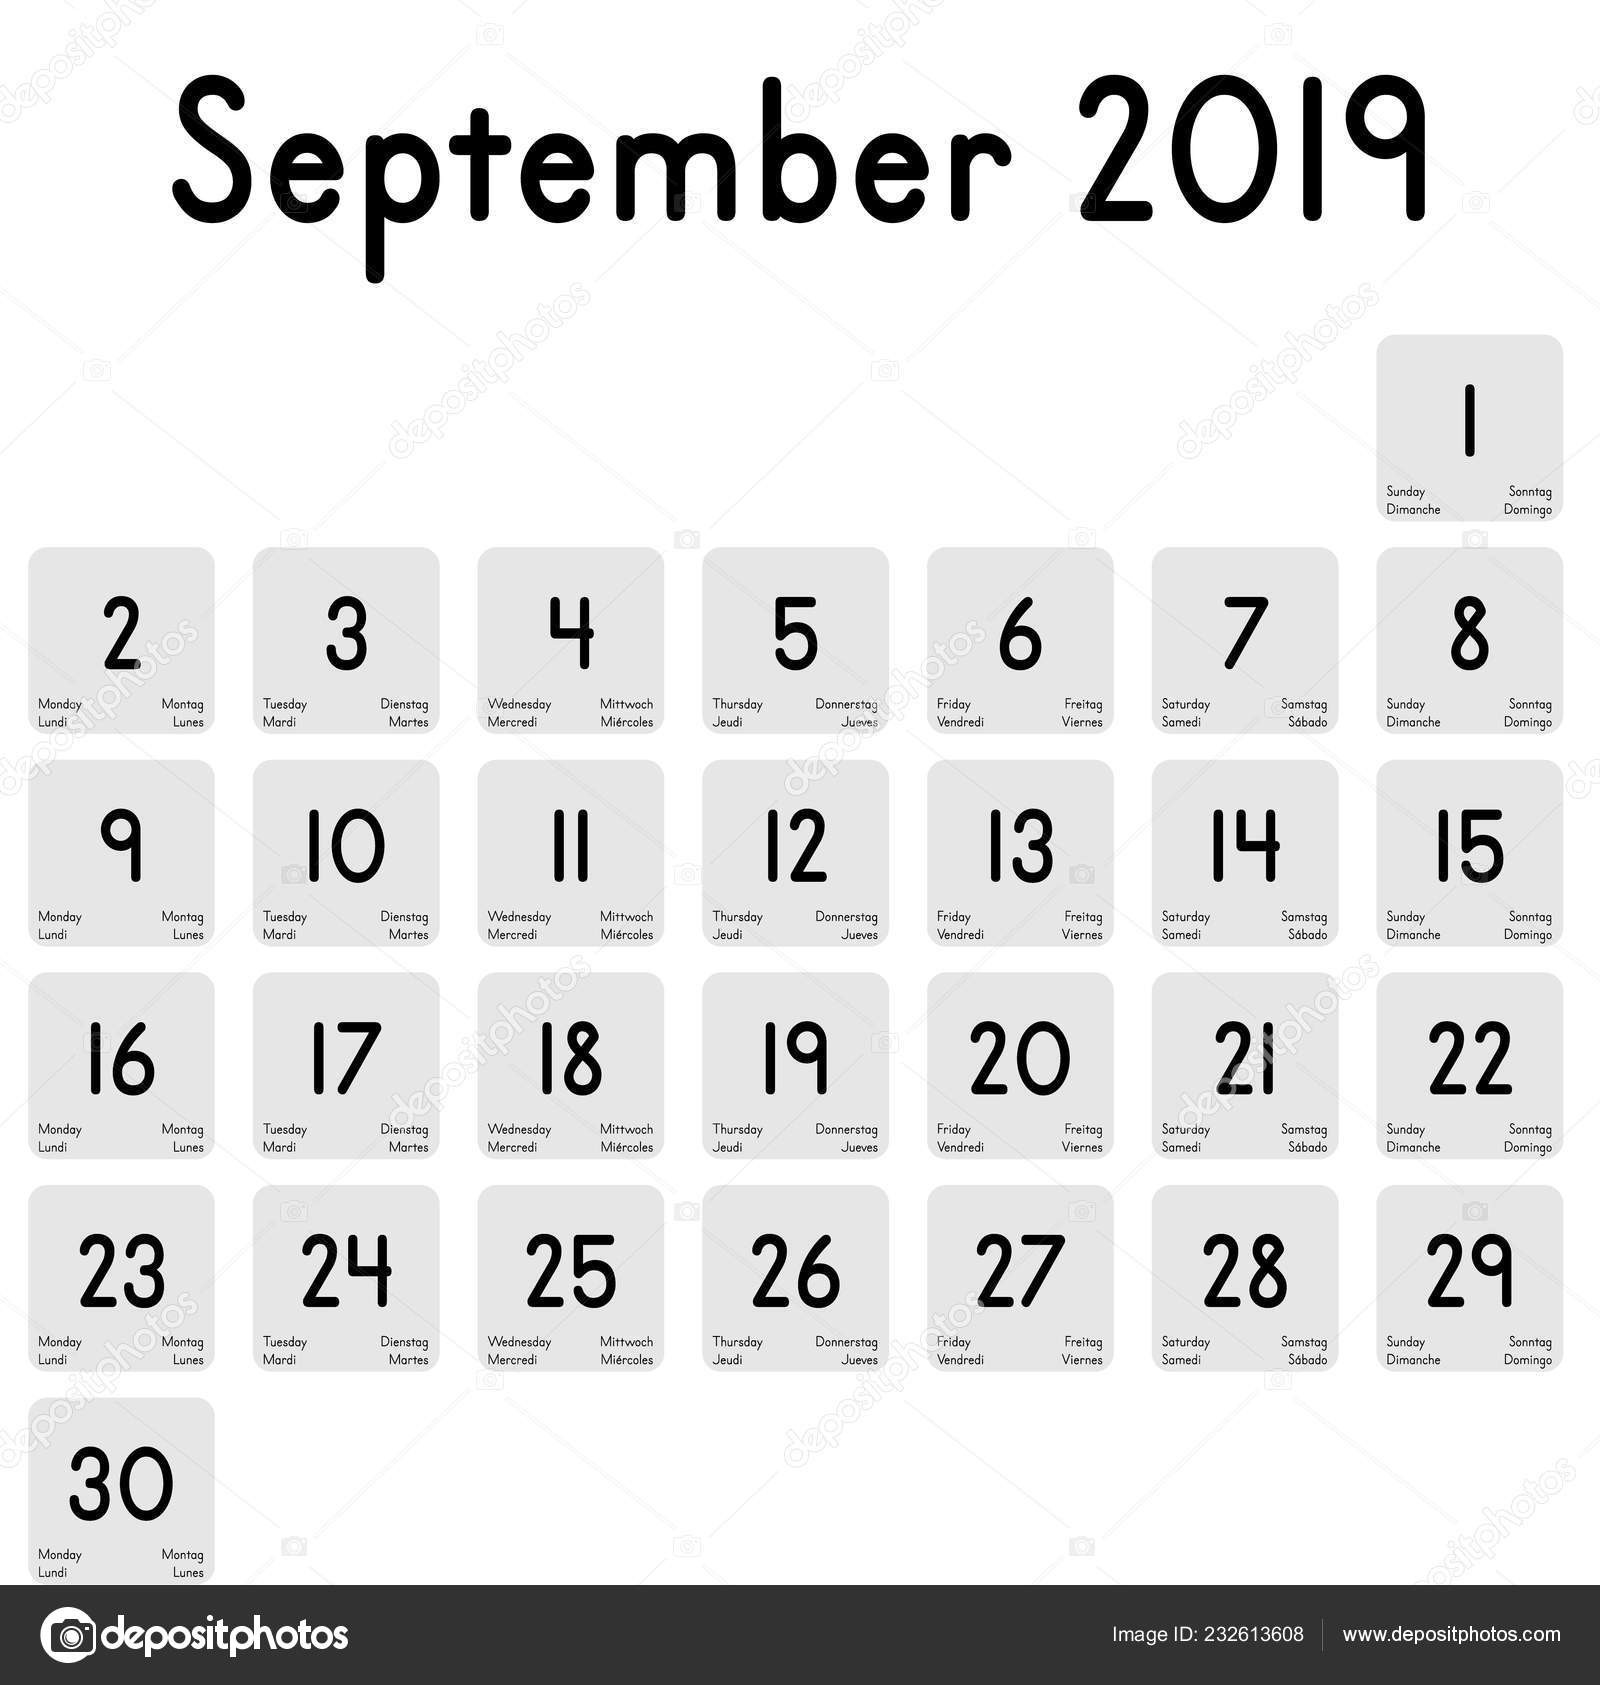 depositphotos stock illustration detailed daily calendar month september